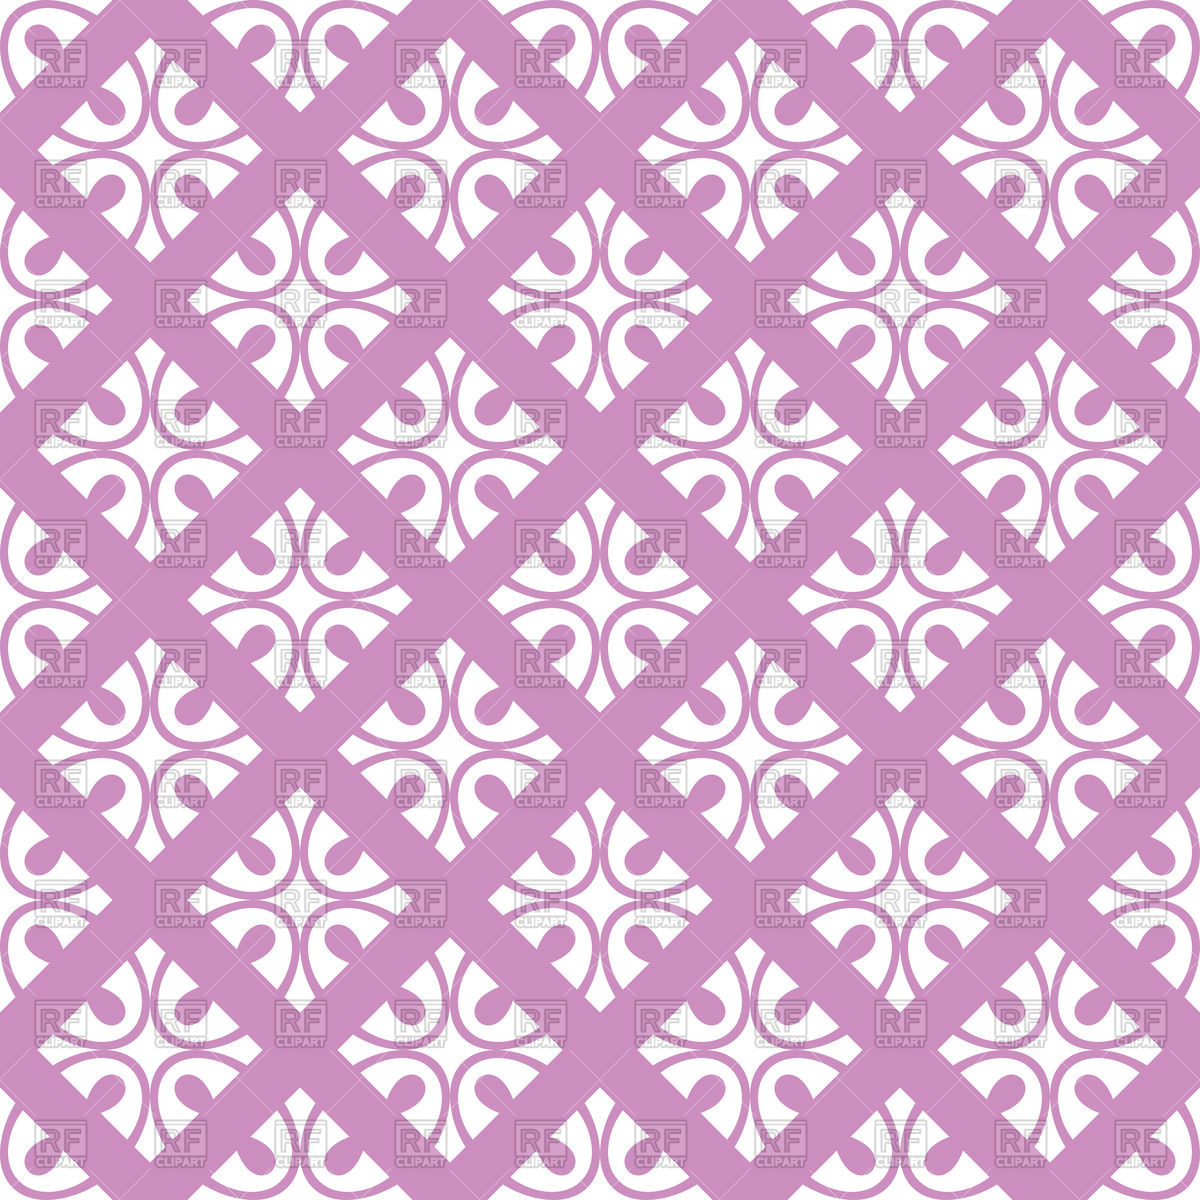 Violet seamless floral ornate wallpaper Vector Image #47245.